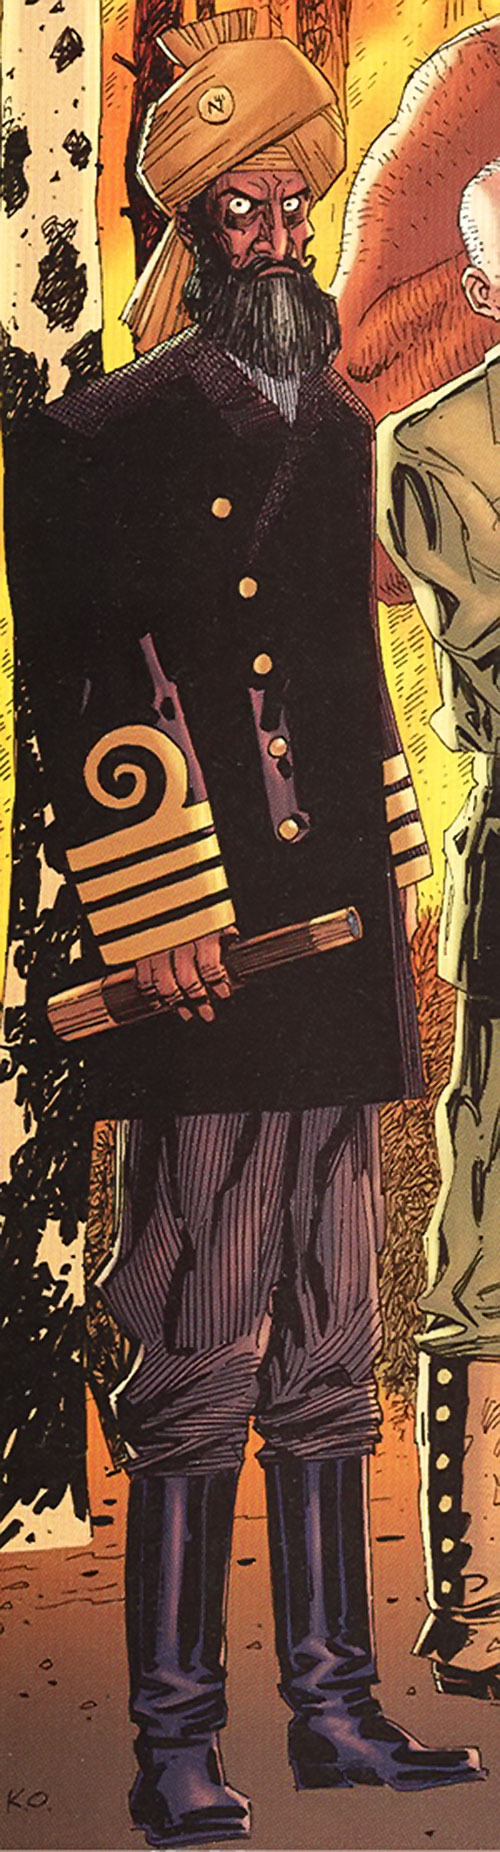 Captain Nemo (League of Extraordinary Gentlemen) with an insane stare